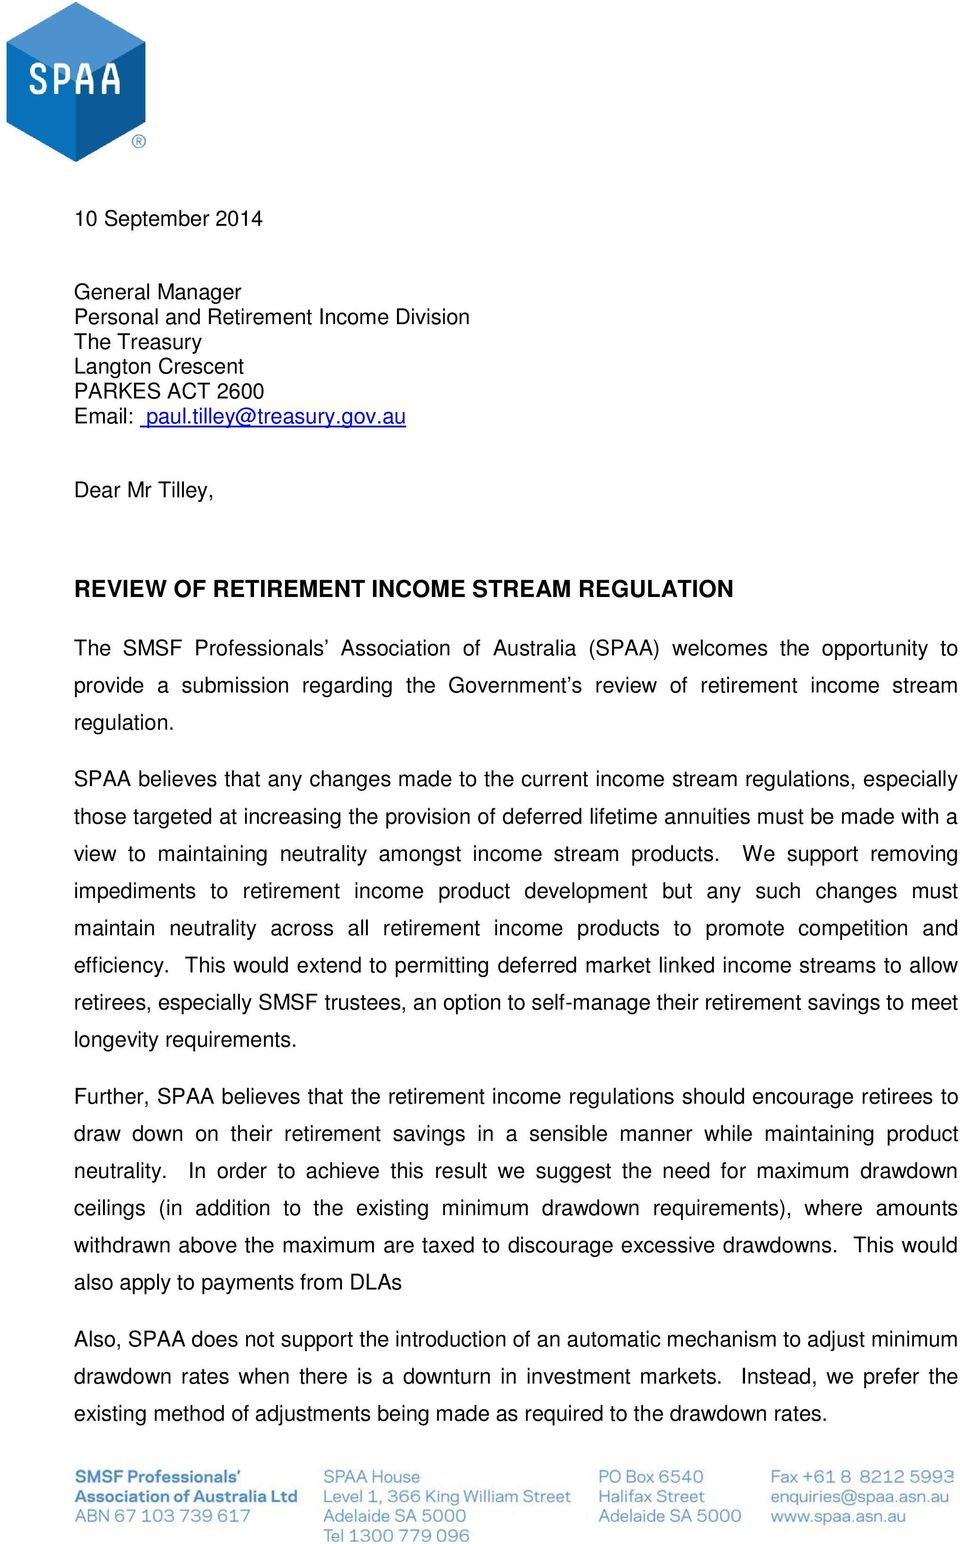 review of retirement income stream regulation.